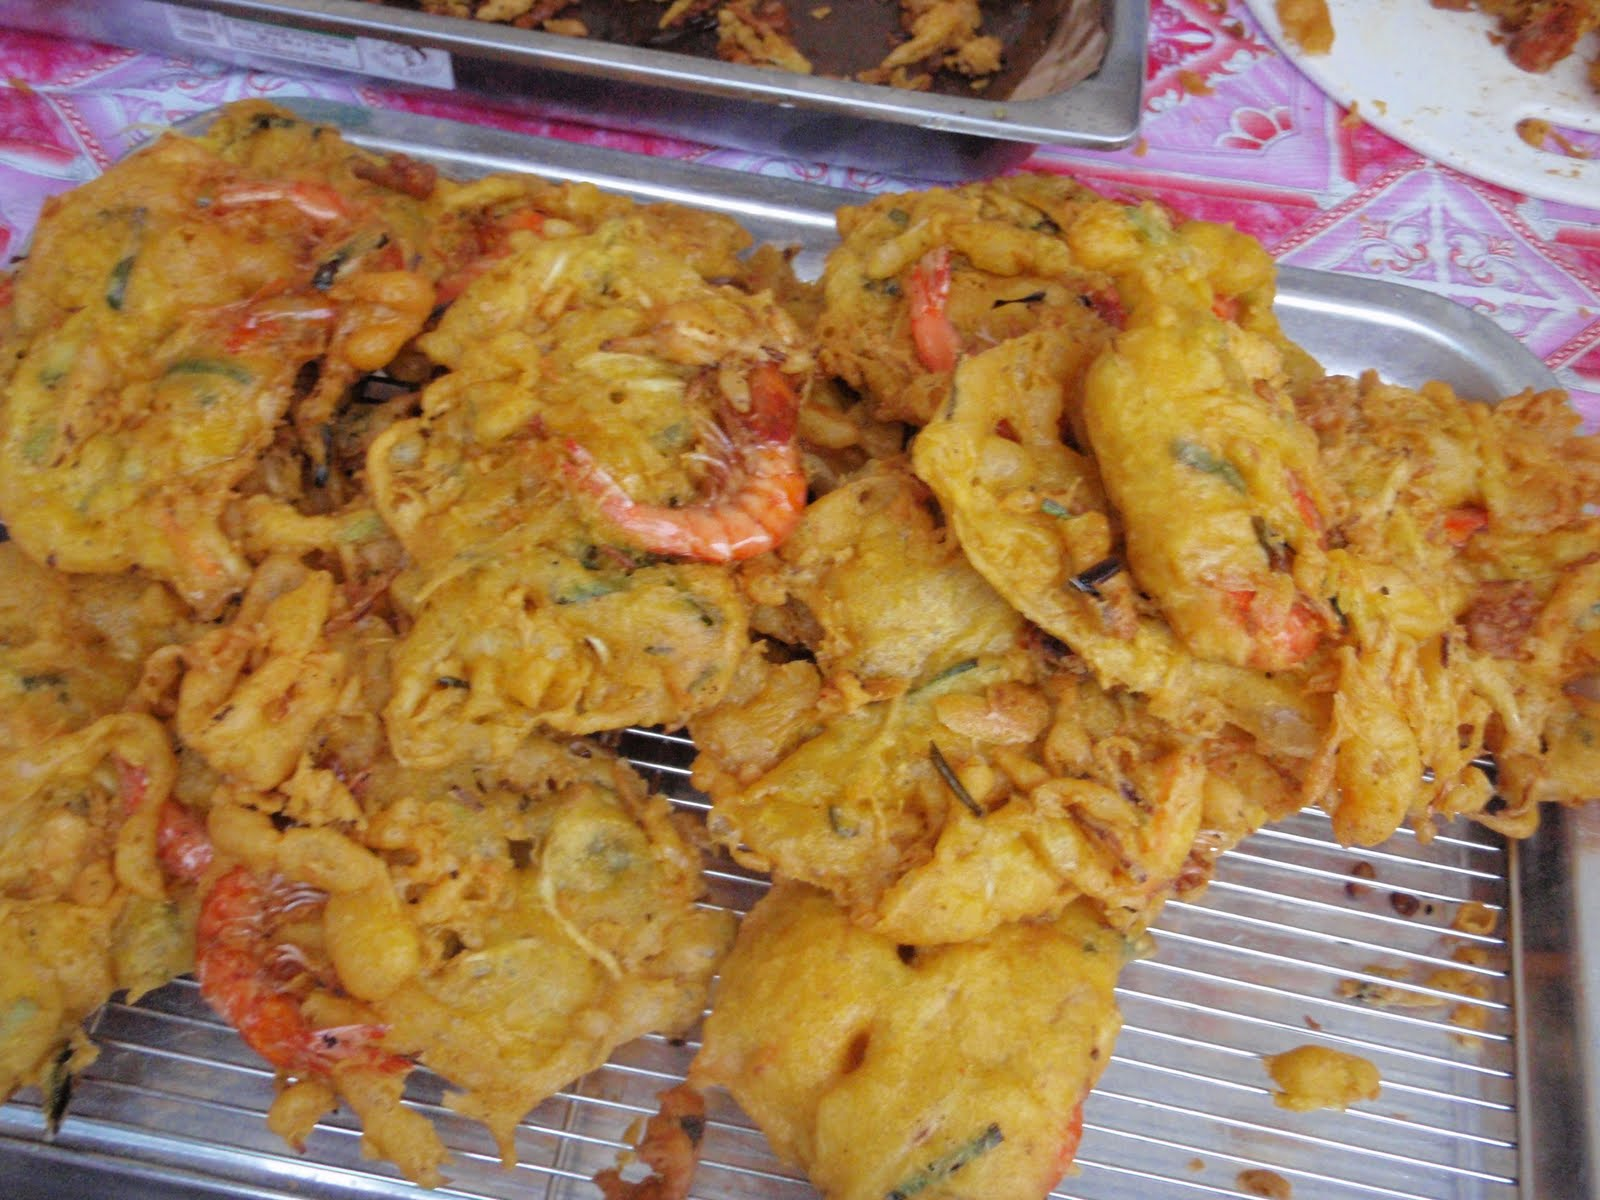 Xing Fu: CUCUR UDANG (PRAWN FRITTERS)